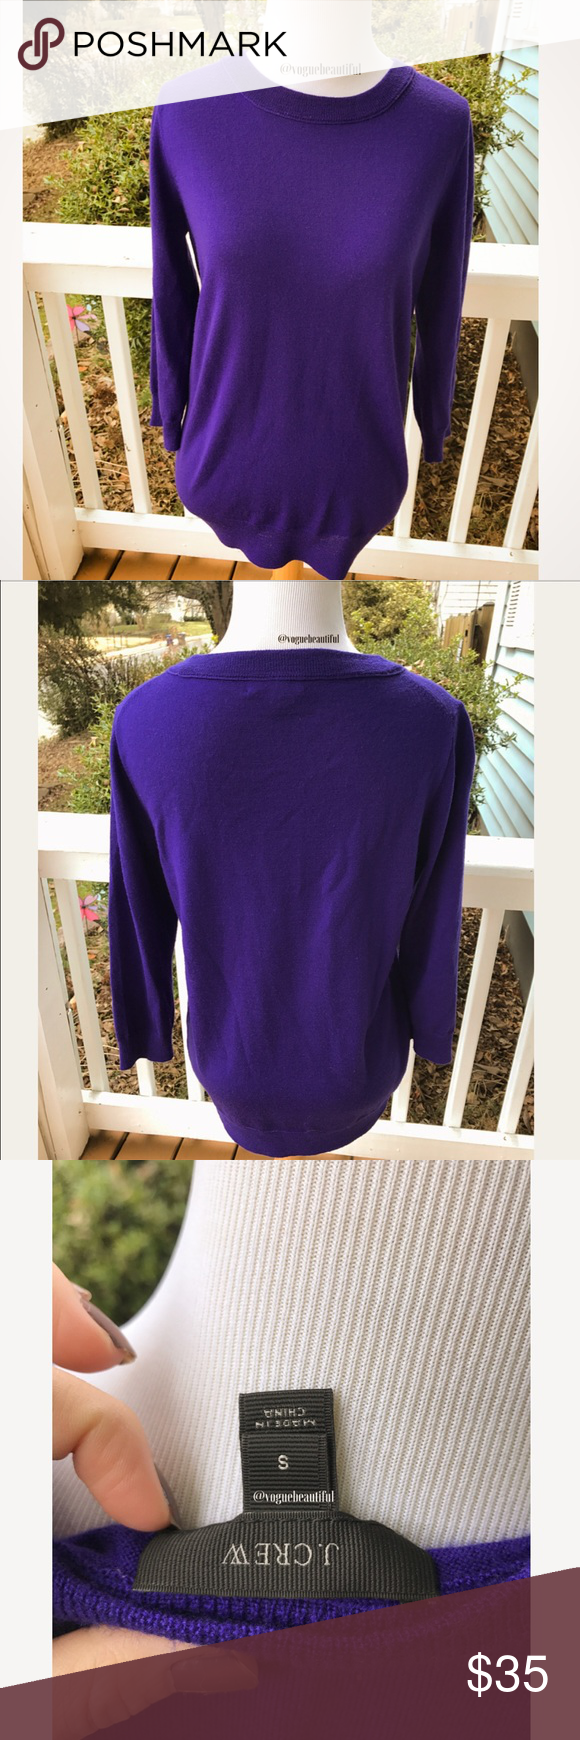 J.Crew Merino Wool Tippi Sweater in Deep Purple | Deep purple ...